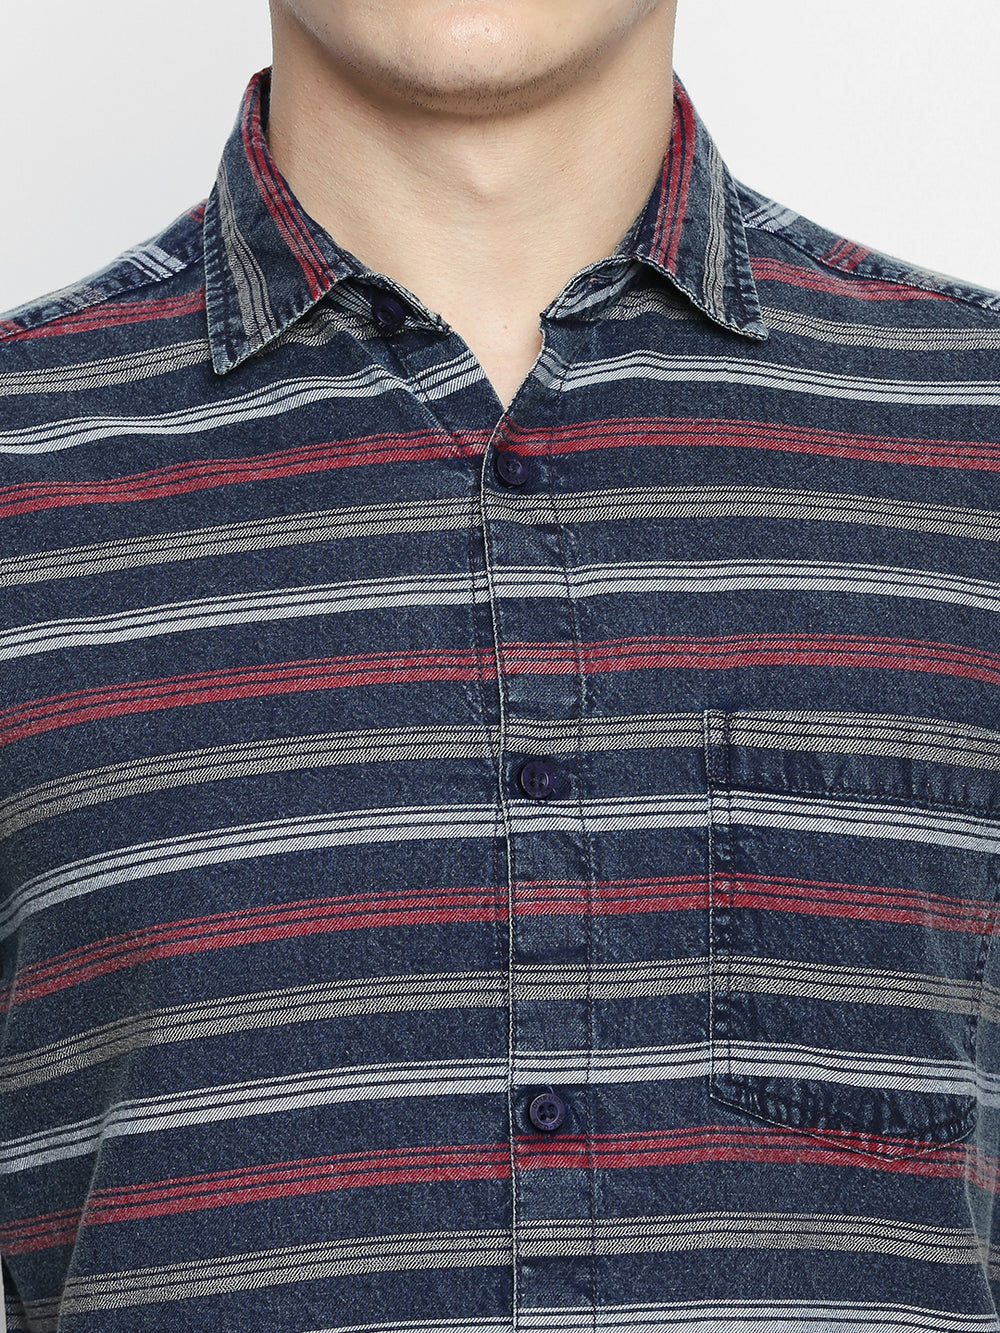 Disrupt Navy-Red Cotton Fabric Full Sleeve Striped Shirt